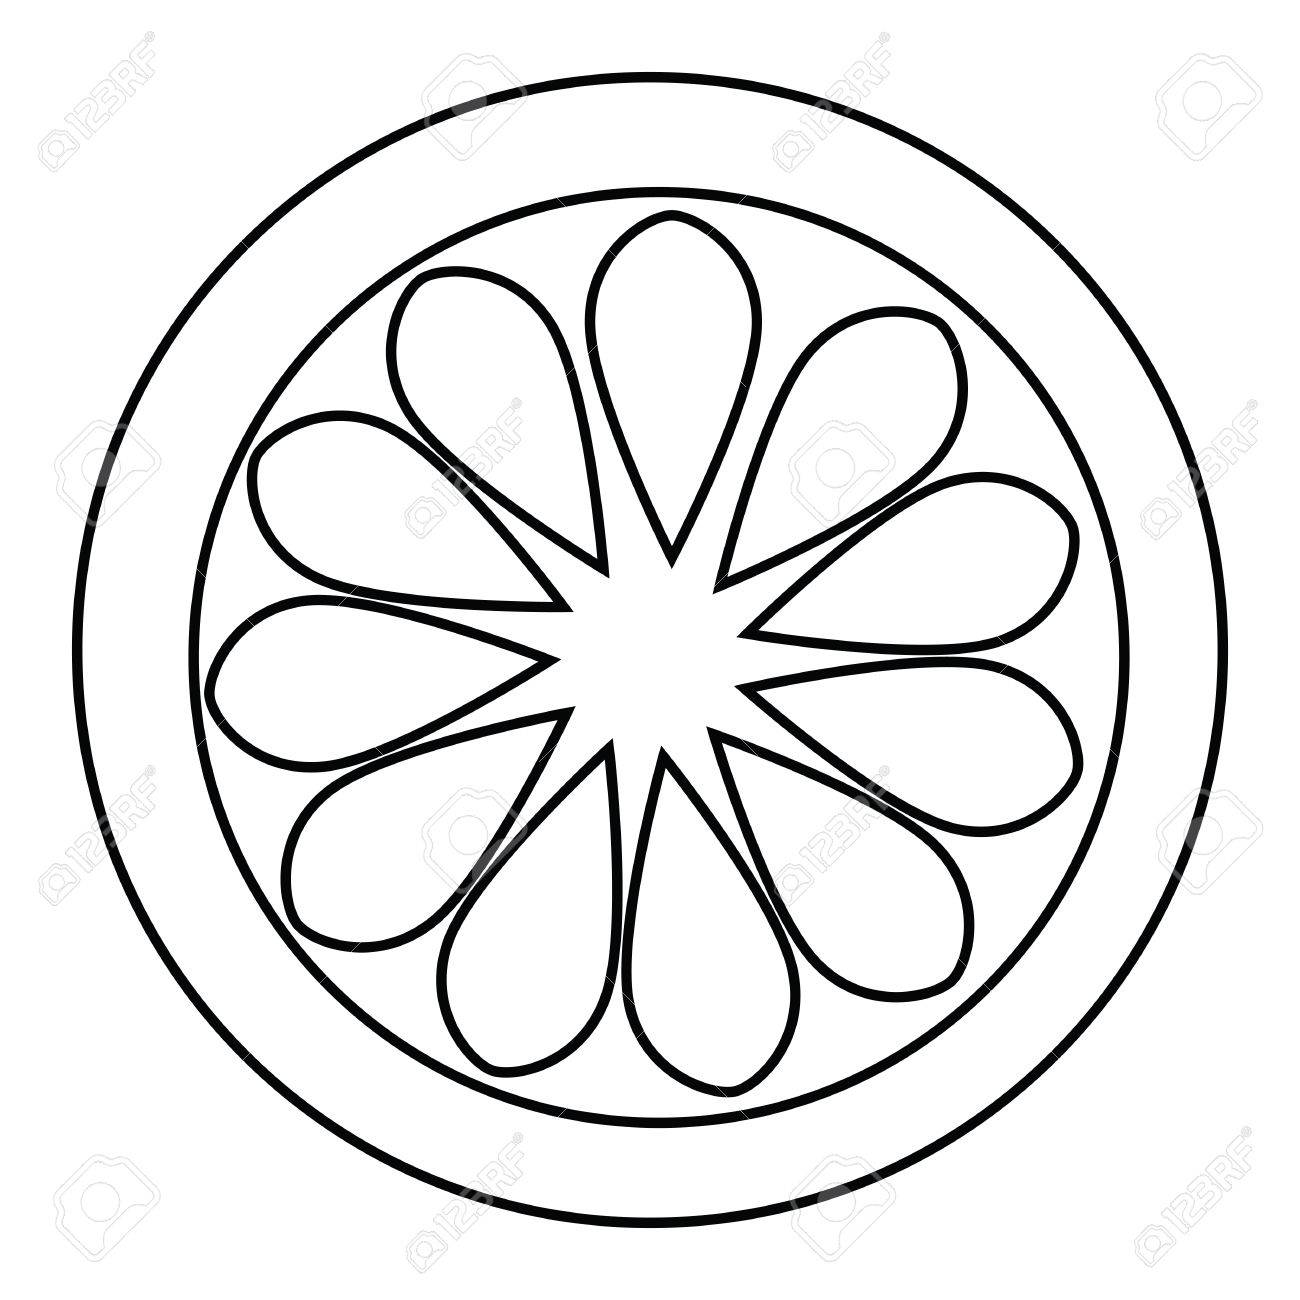 1300x1300 Lemon Slice Outline For Coloring Book Vector For Download Isolated